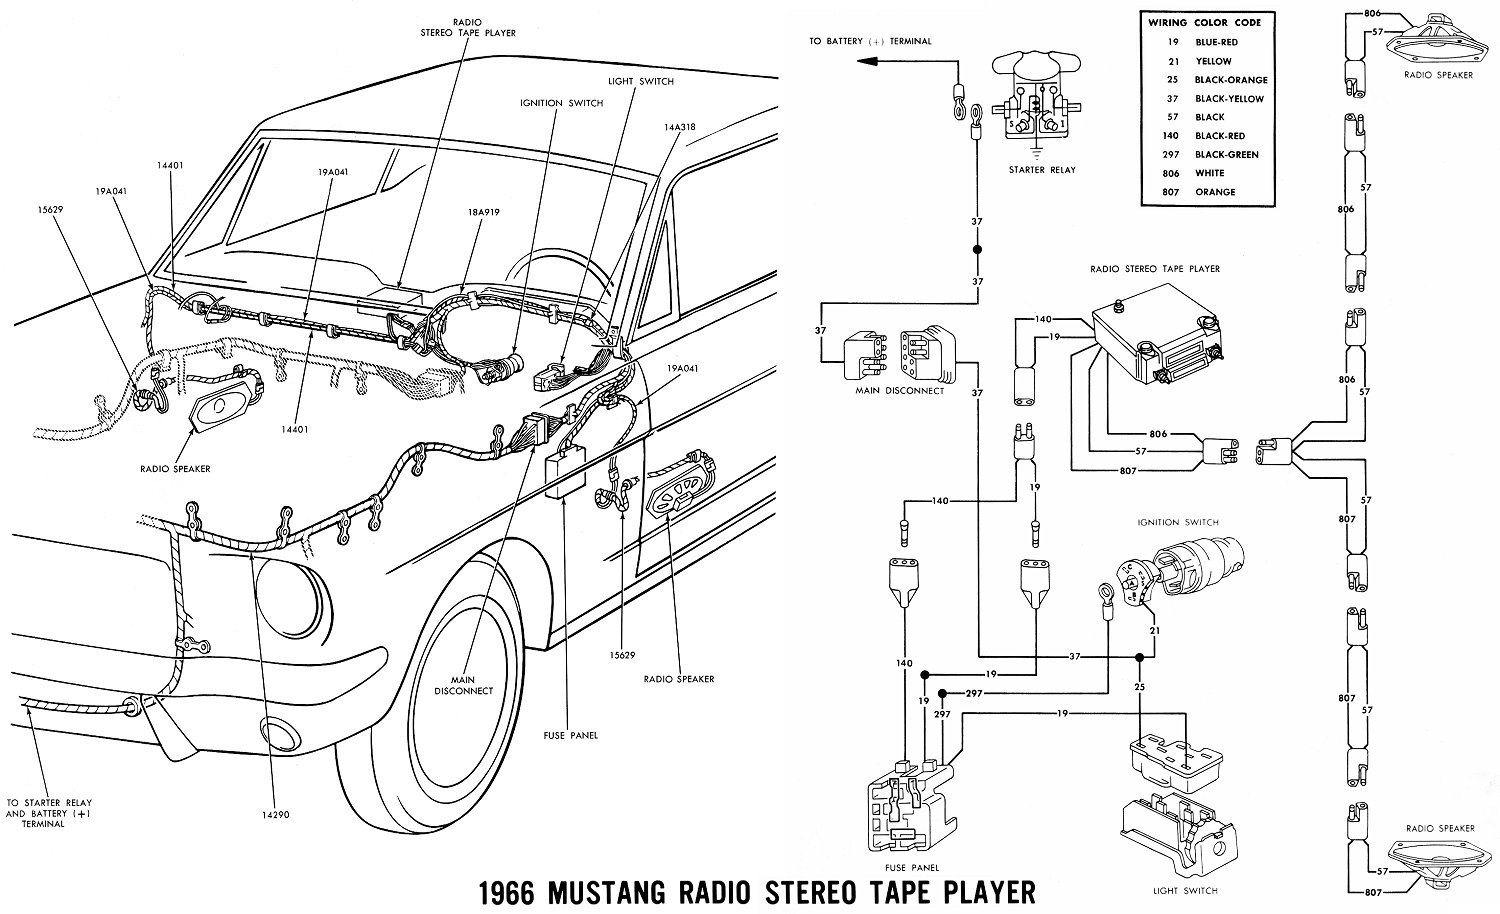 1966 Mustang Wiring Diagrams on radio wiring harness diagram